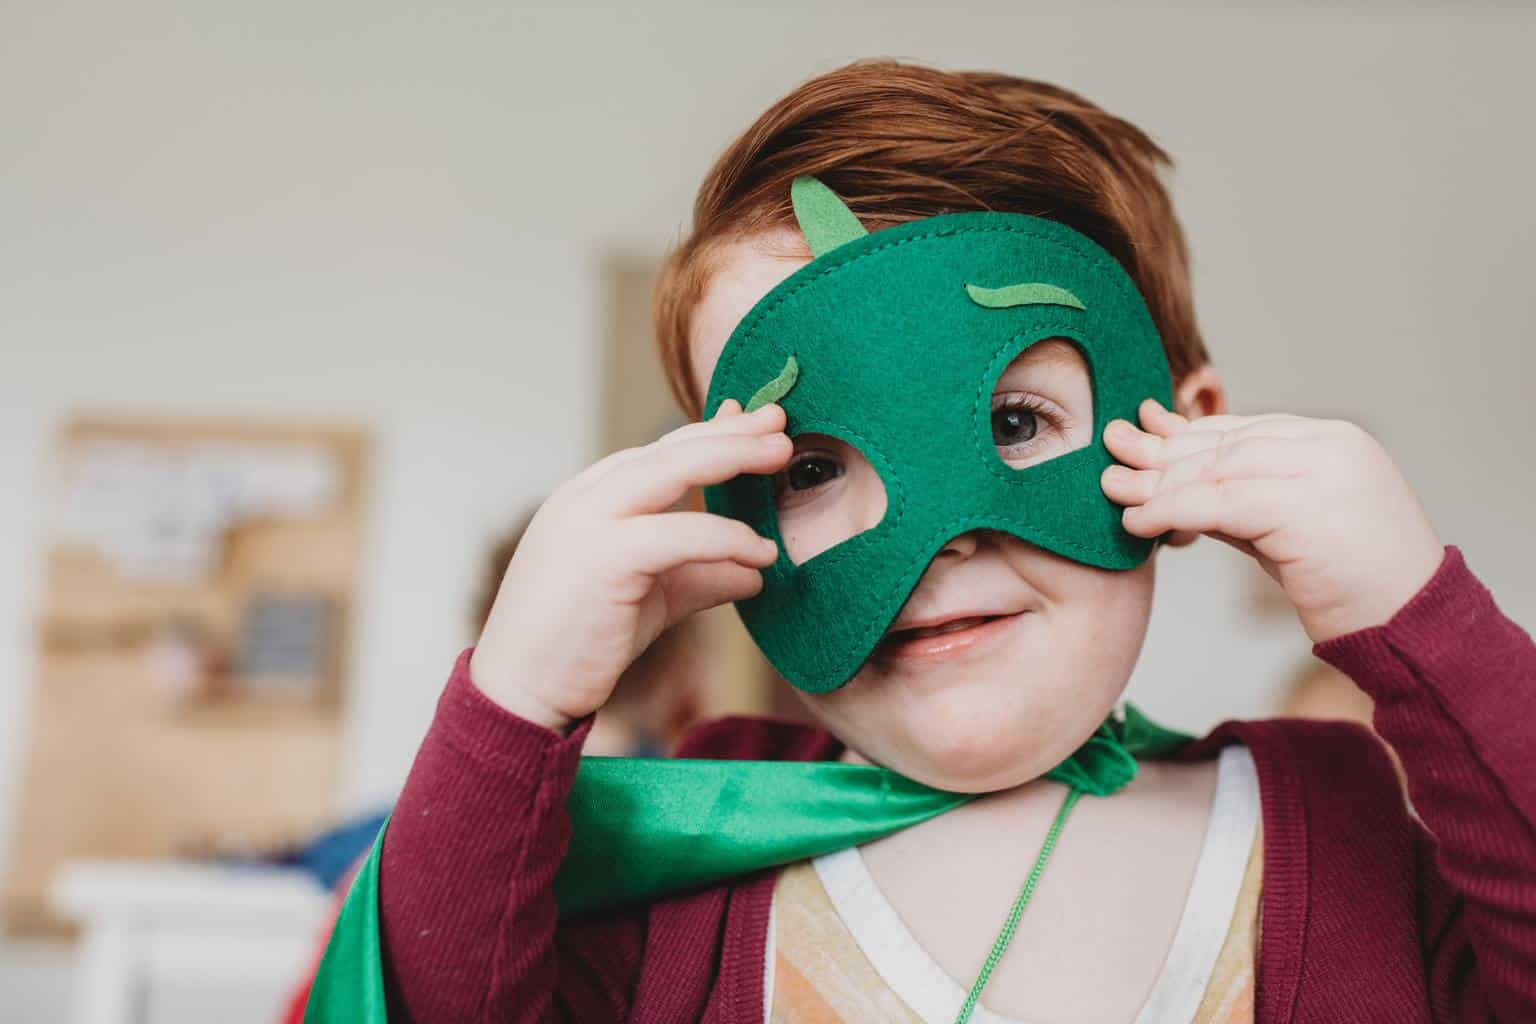 5 ways to make an easy World Book Day costume